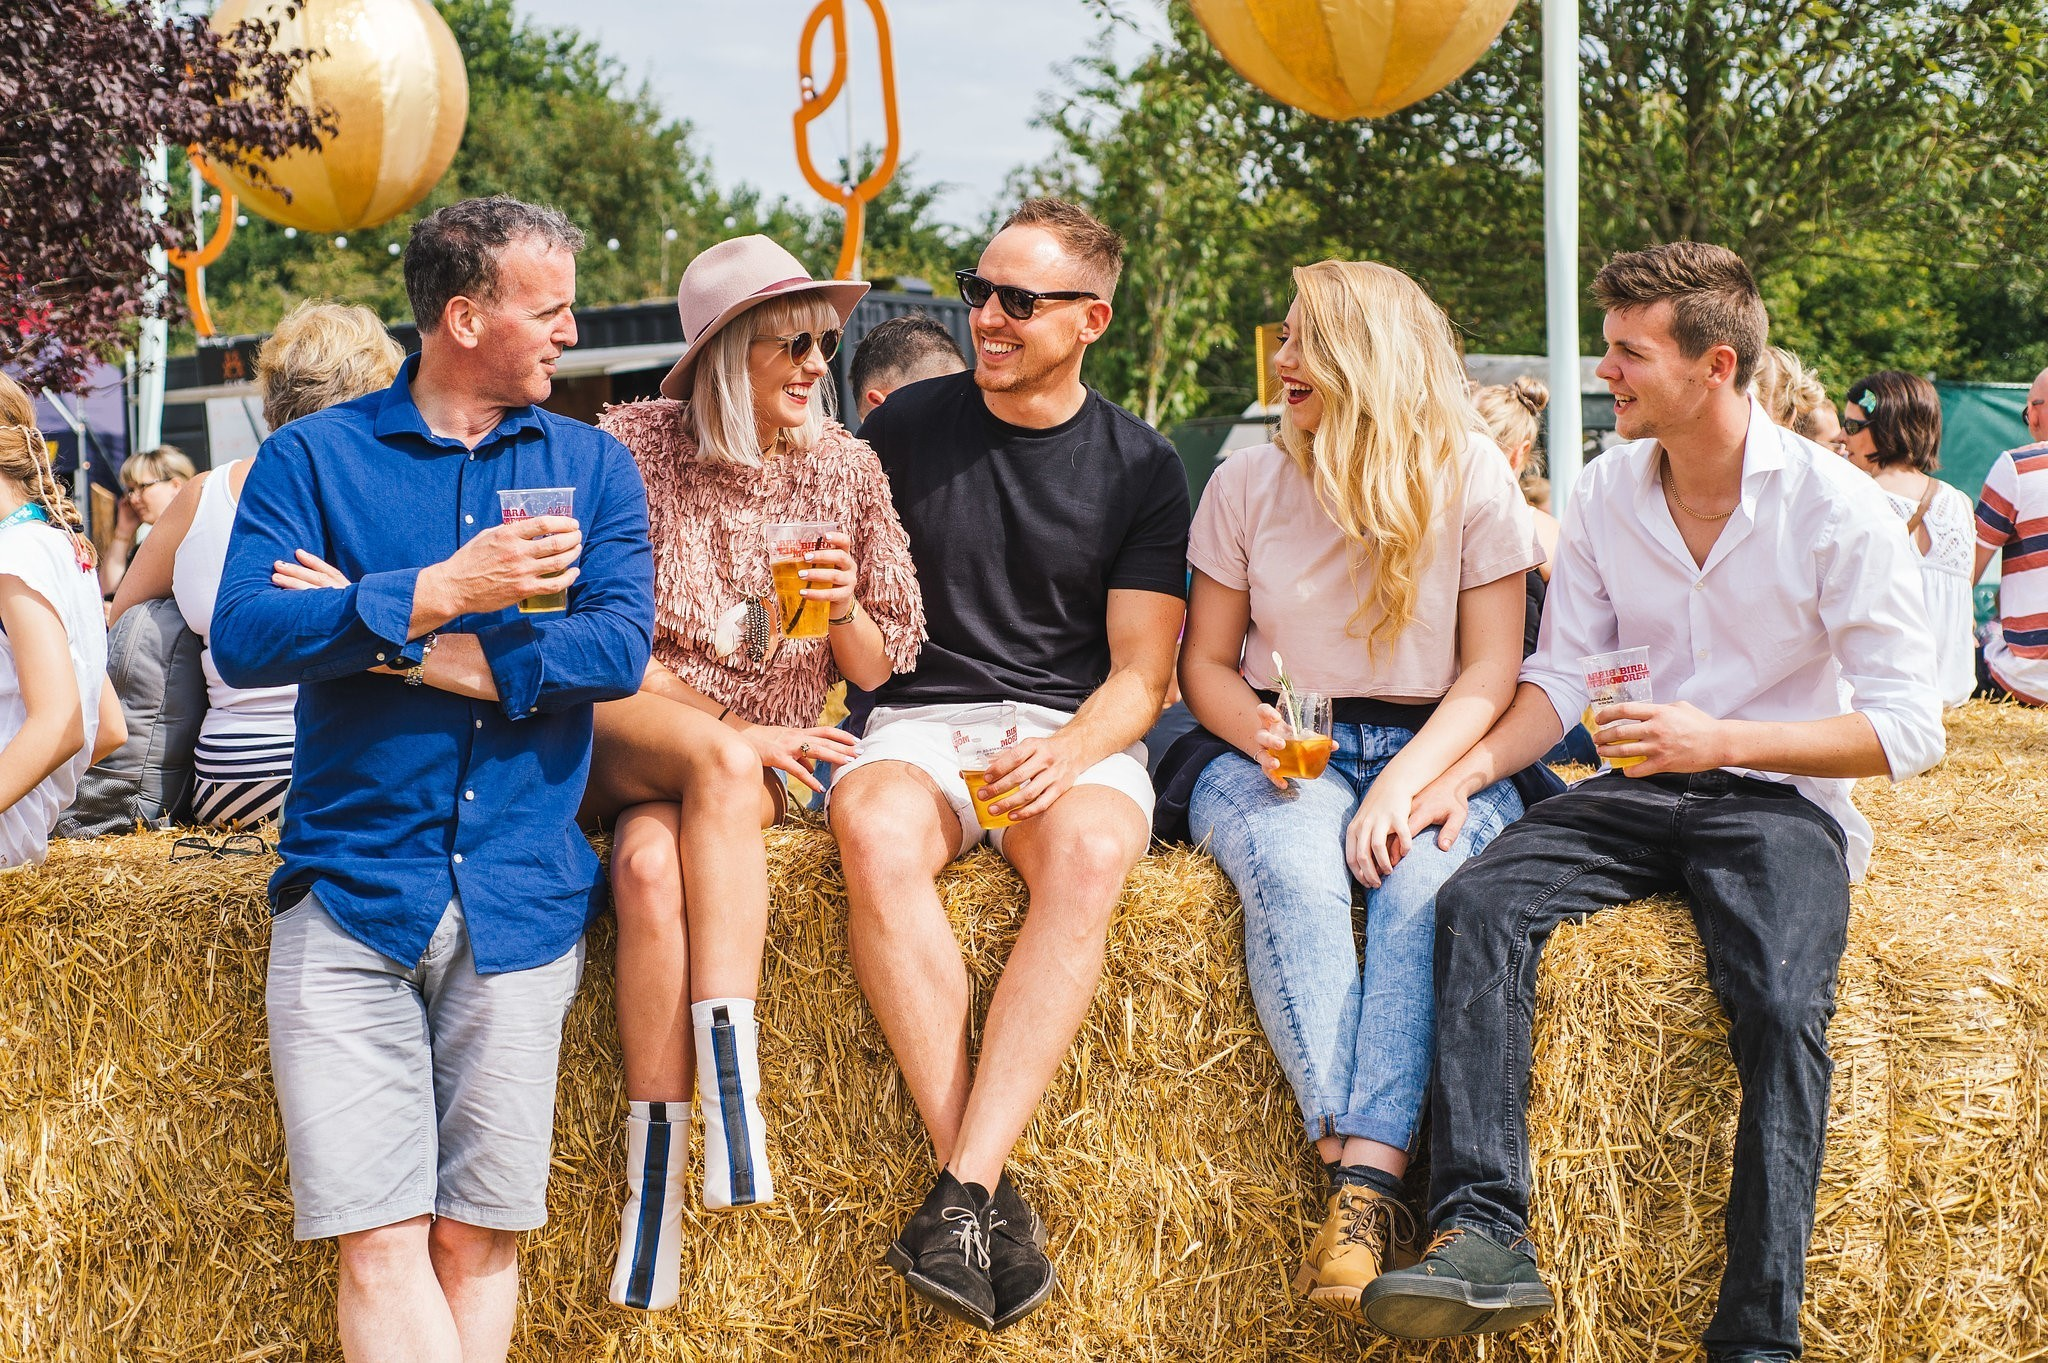 Big Feastival 2019: Jack Savoretti among new music and food acts